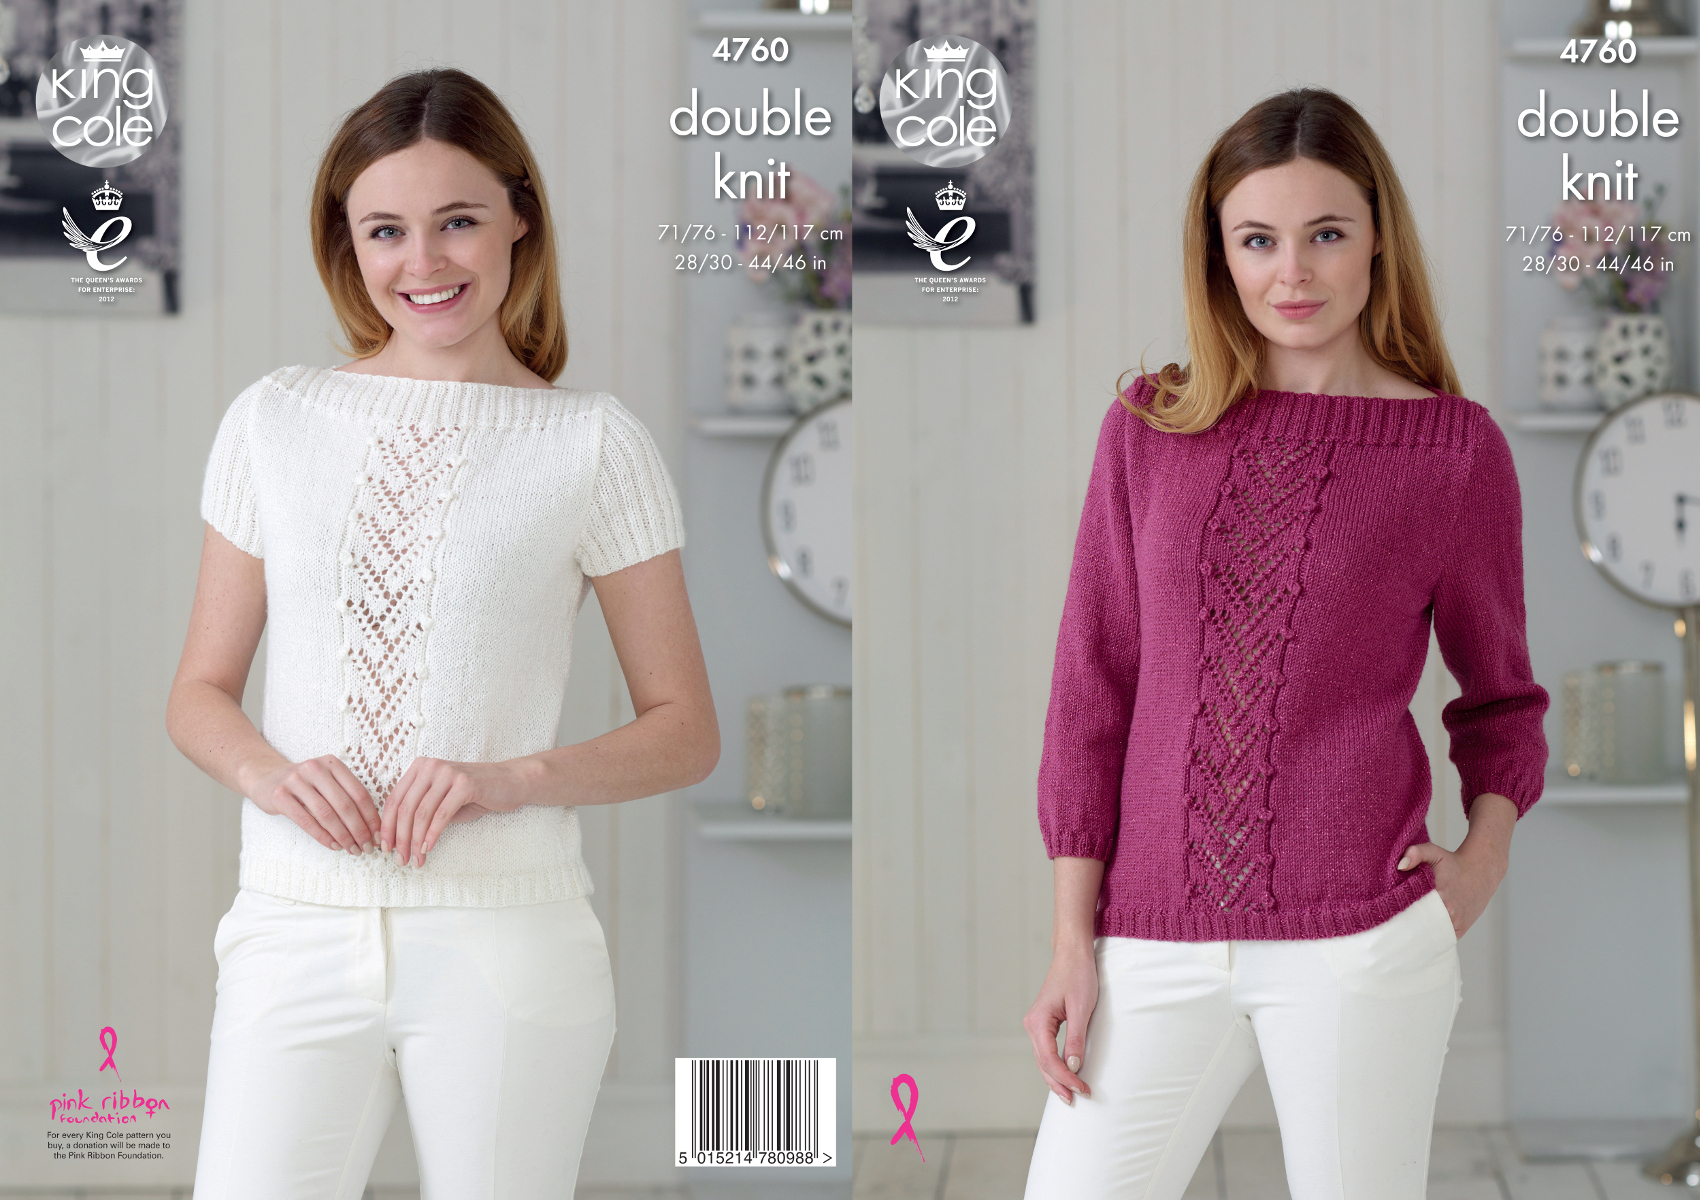 King Cole Ladies Double Knitting Pattern Lace Detail Boat Neck ...